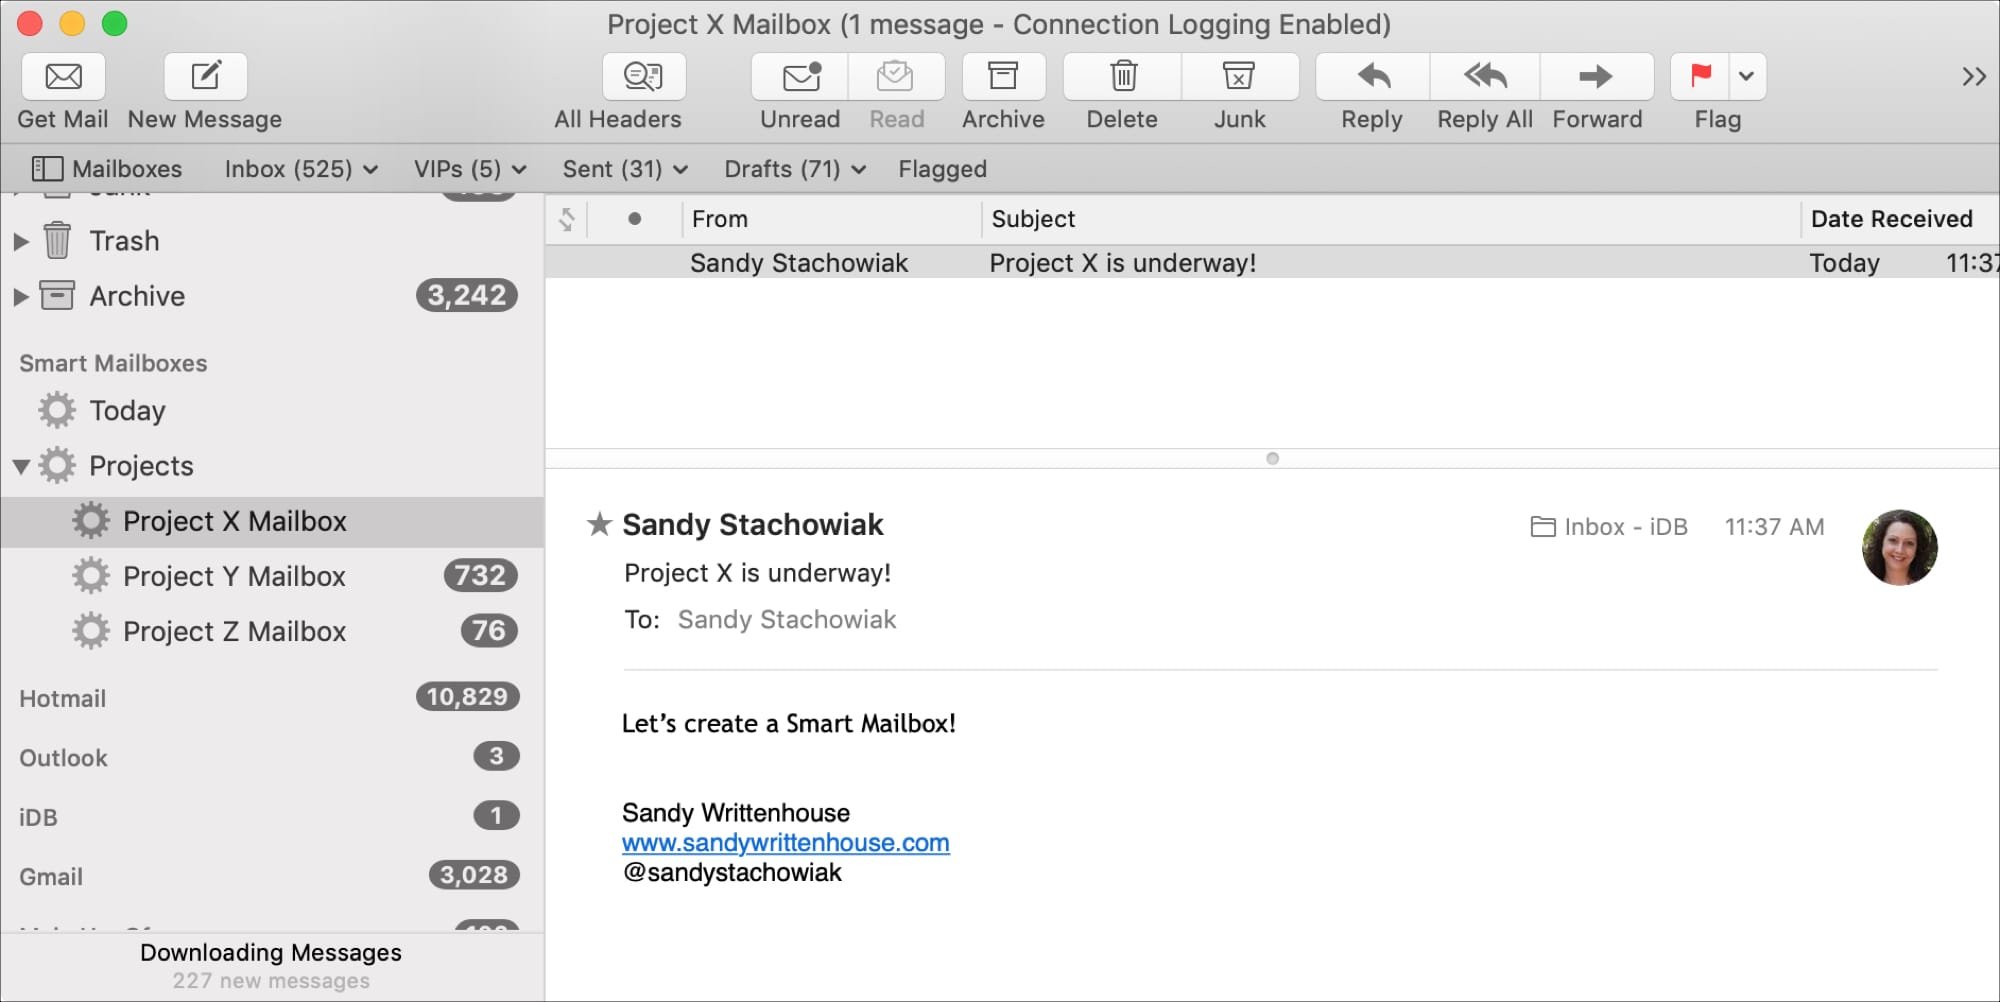 How to use Smart Mailboxes in Mail on Mac